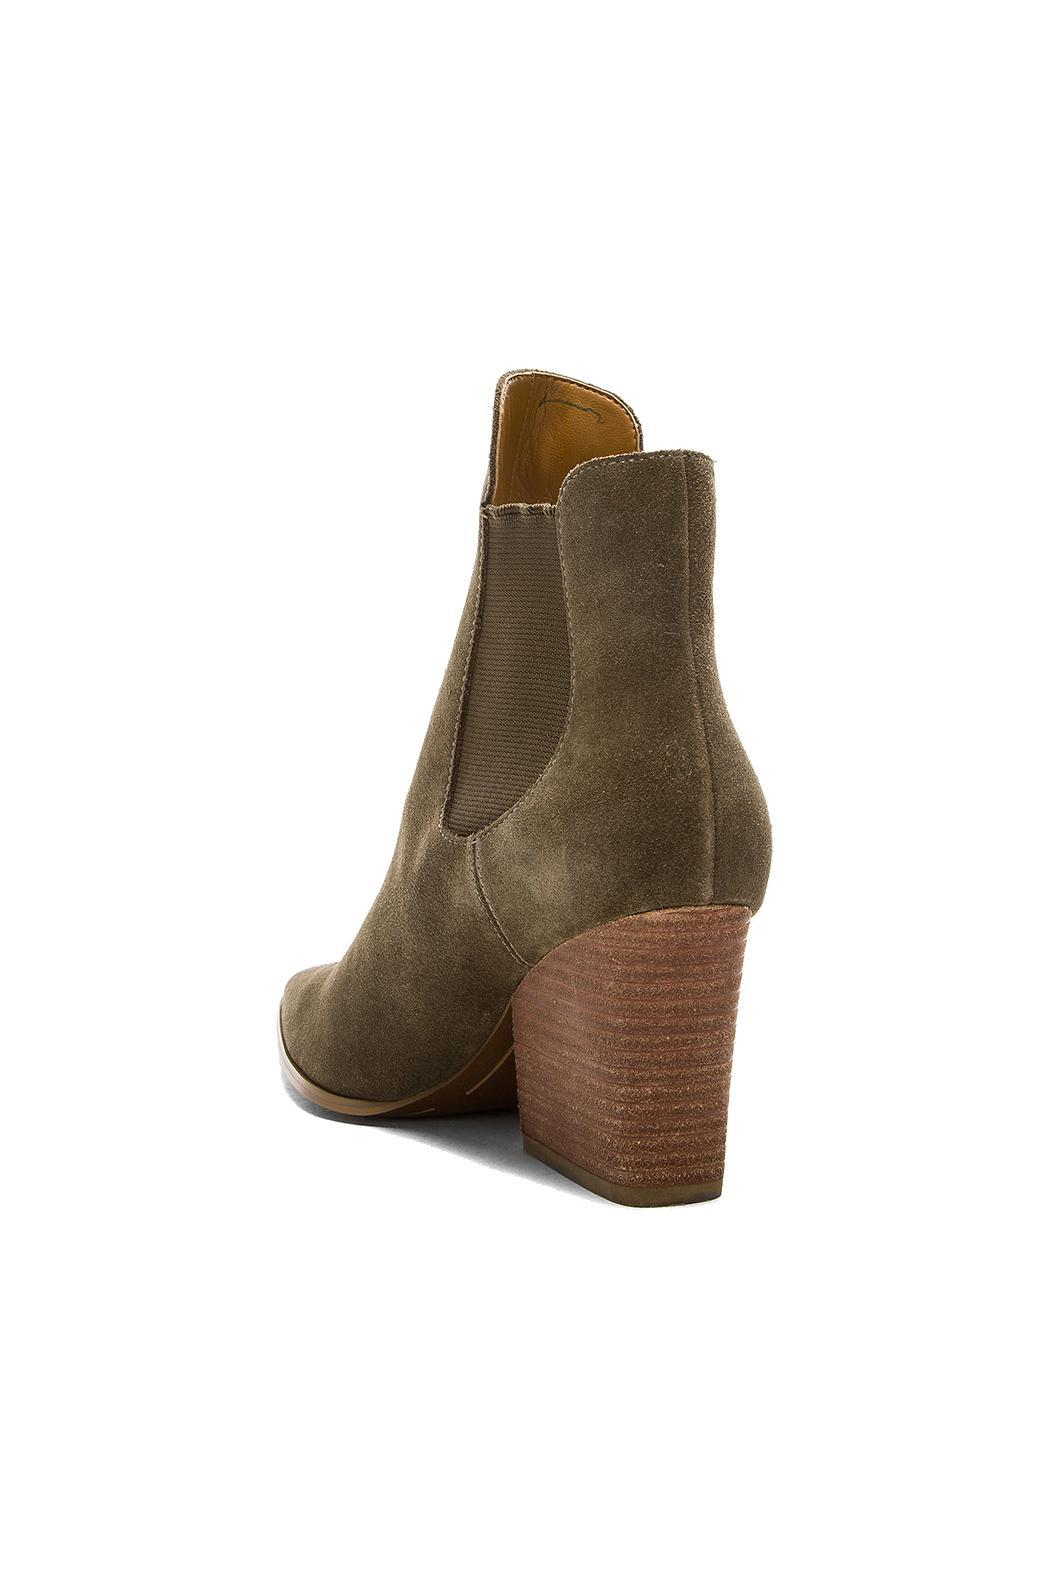 f4200c1c8 Kendall + Kylie Finley Suede Boot from Montreal by Boutique TAG ...